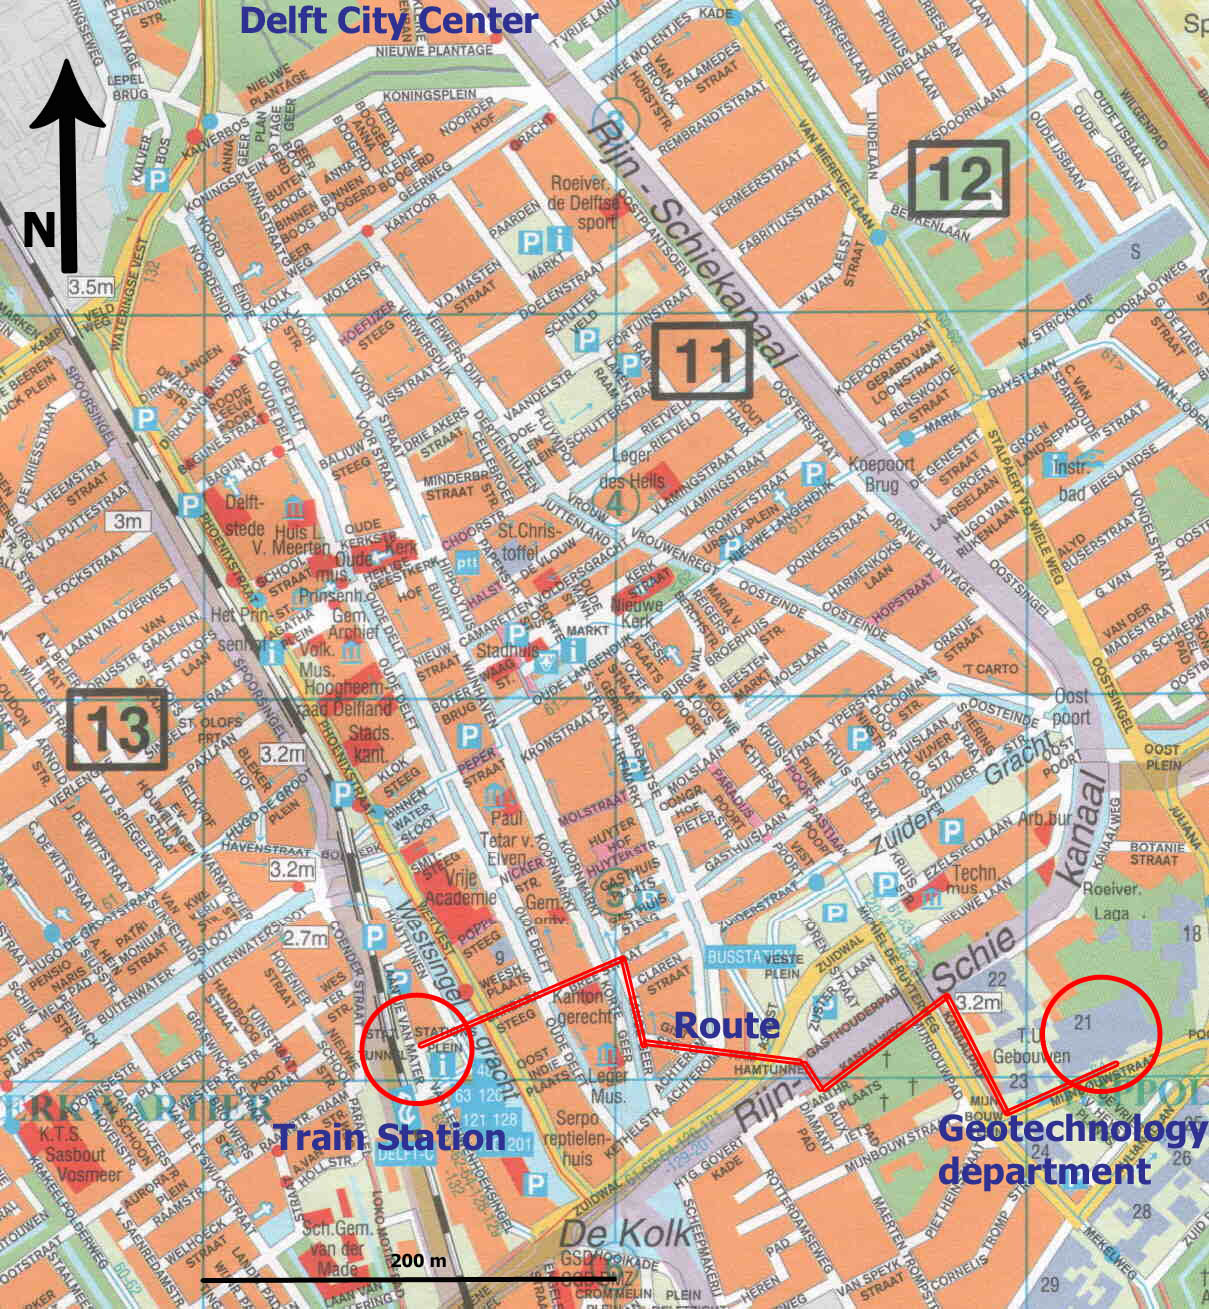 Delft Map Detailed City and Metro Maps of Delft for Download